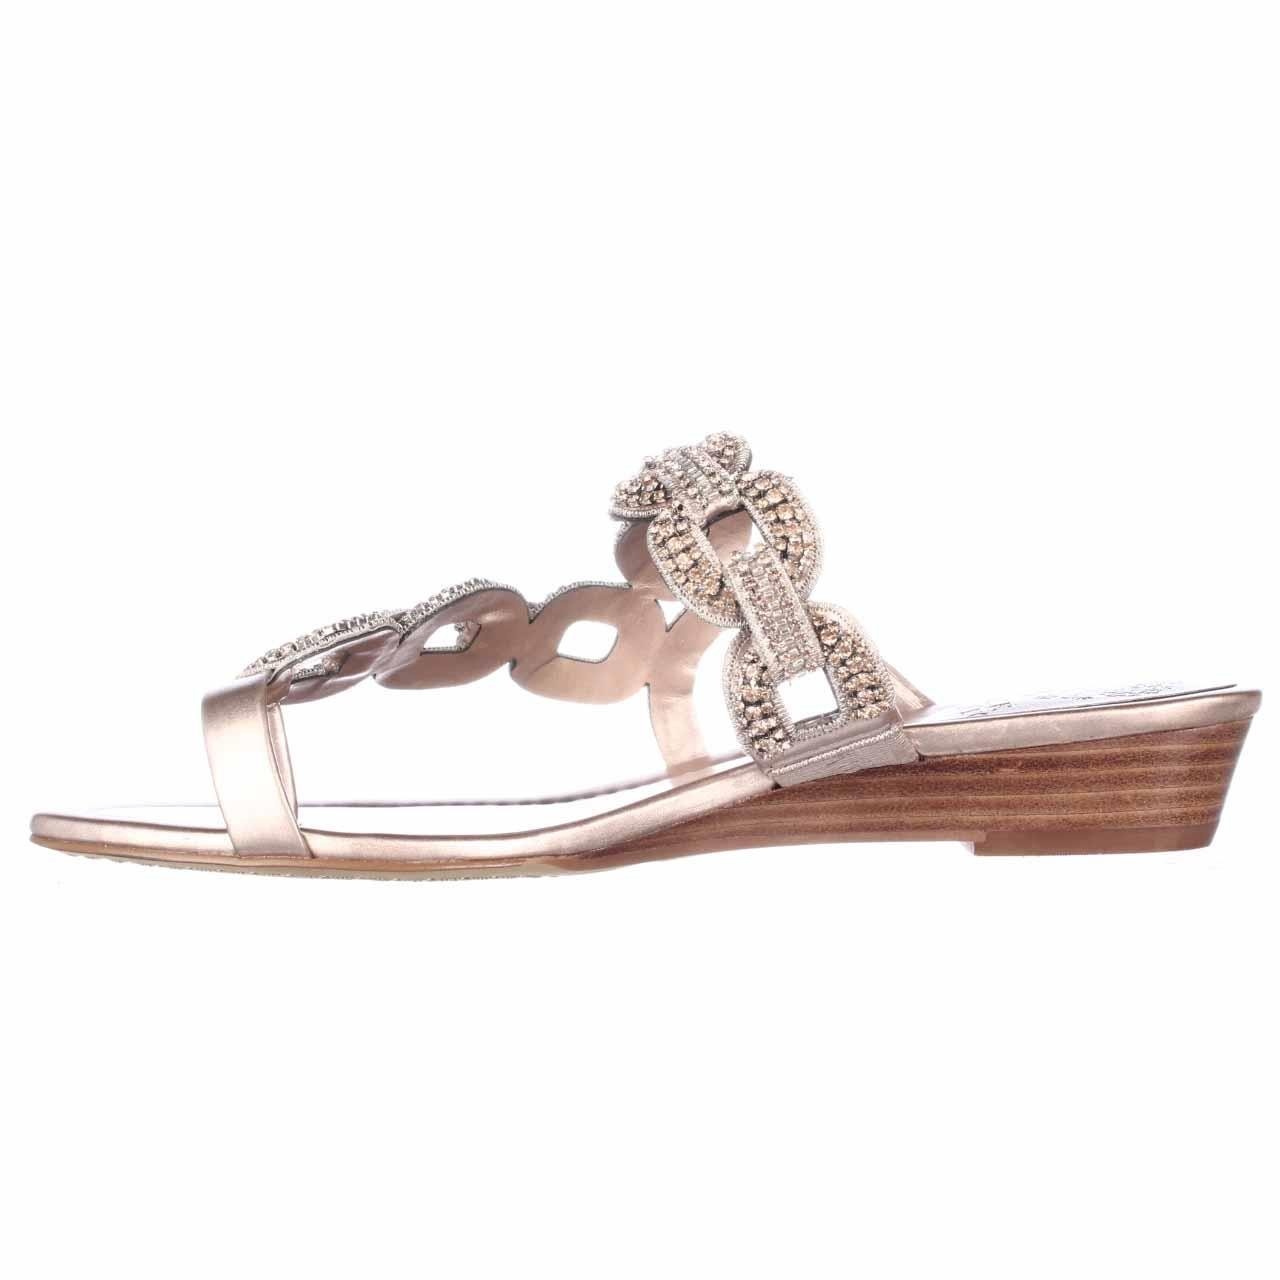 Vince Camuto Inkaa Jeweled Chain Strap Low Wedge Sandals